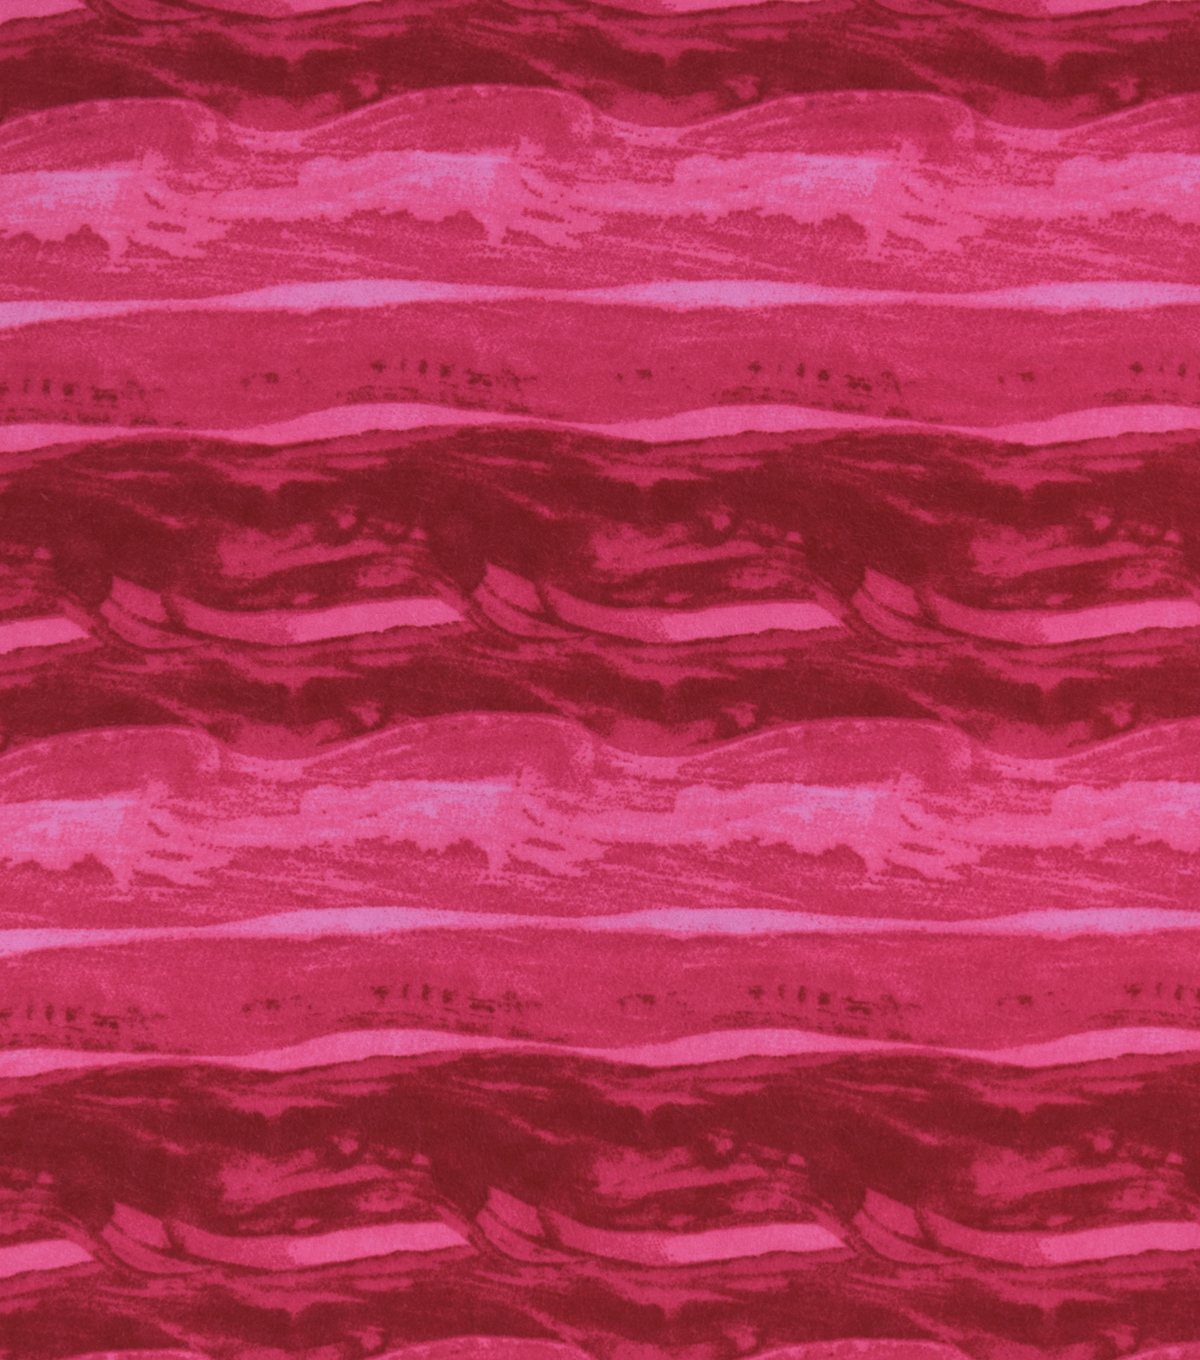 Snuggle Flannel Fabric-Hot Pink Marble Tie Dye